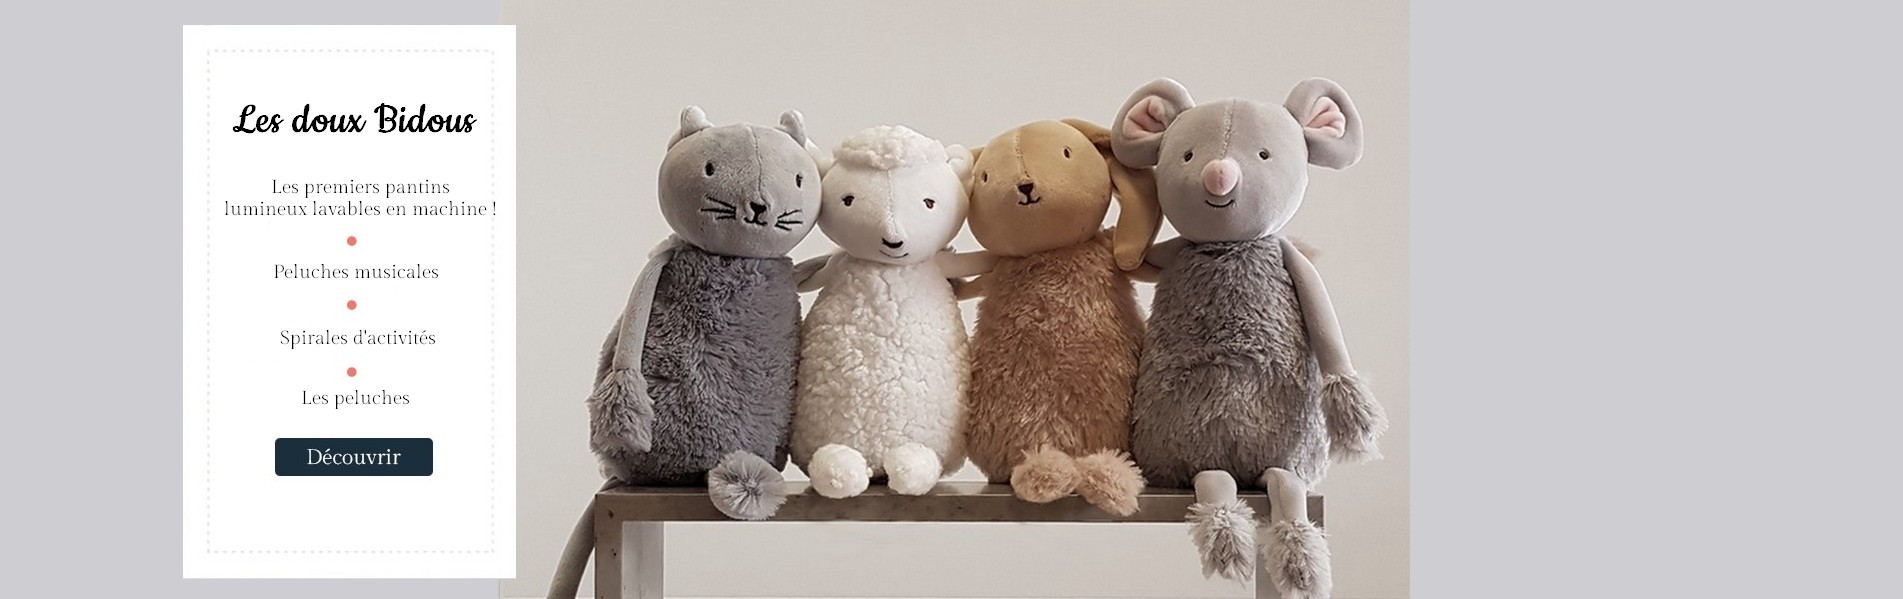 La collection Les doux Bidous